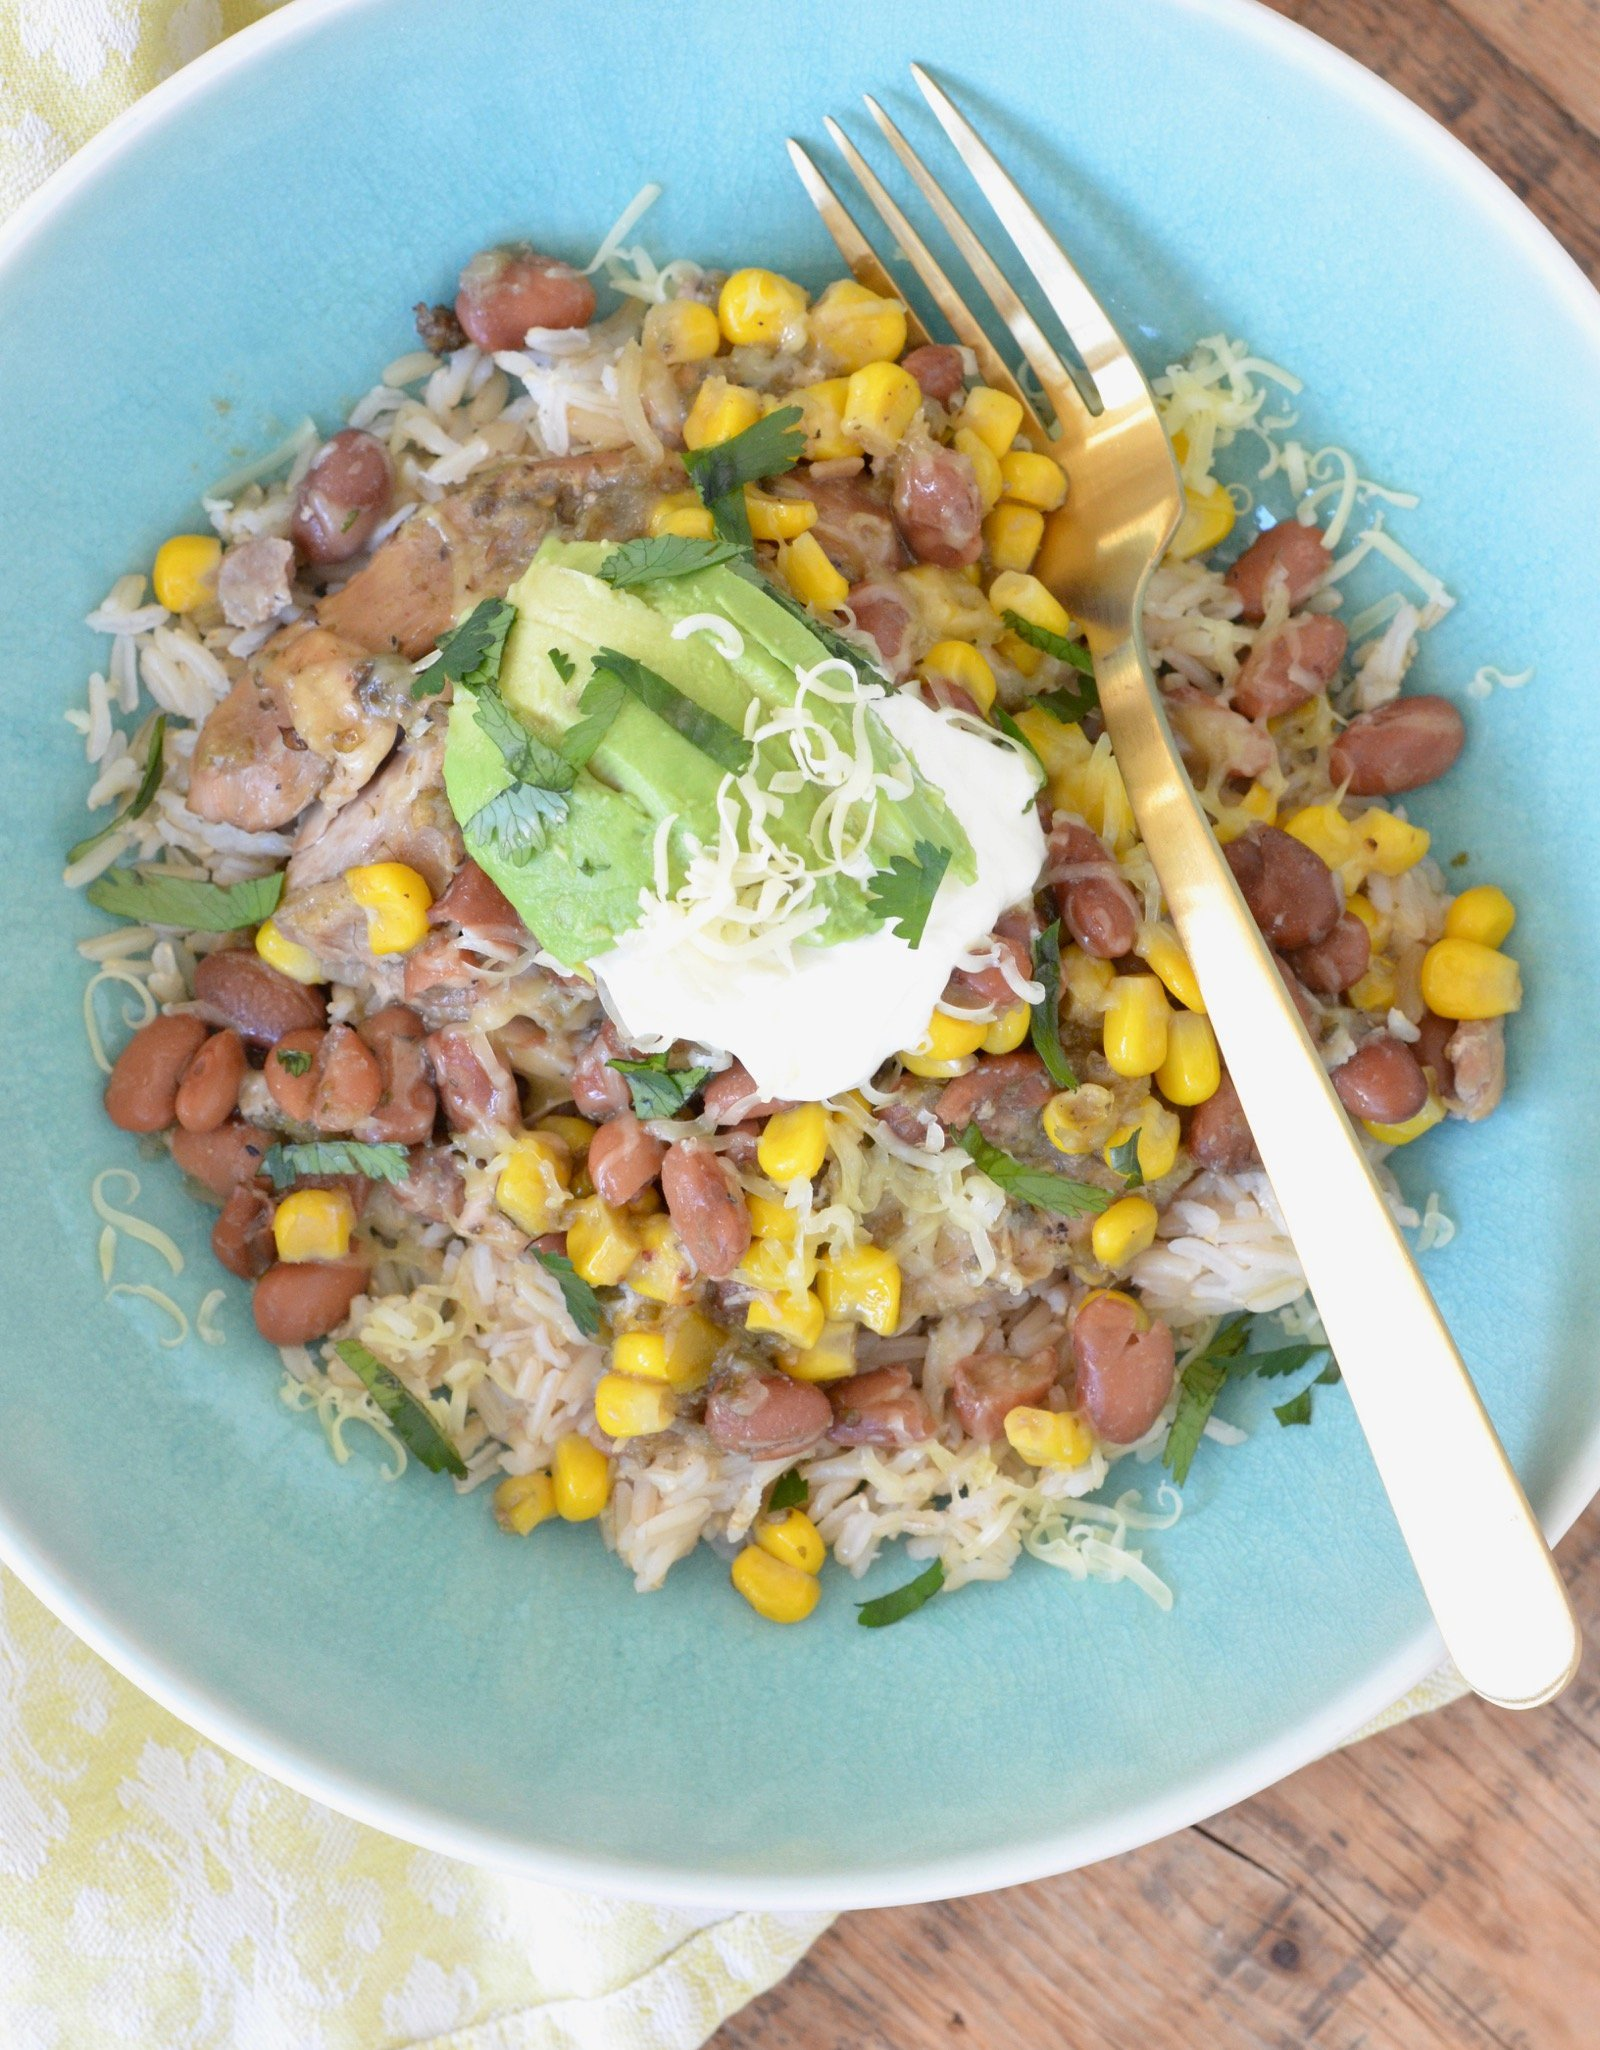 Top View: Slow Cooker Green Salsa Chicken on 100 Days of Real Food